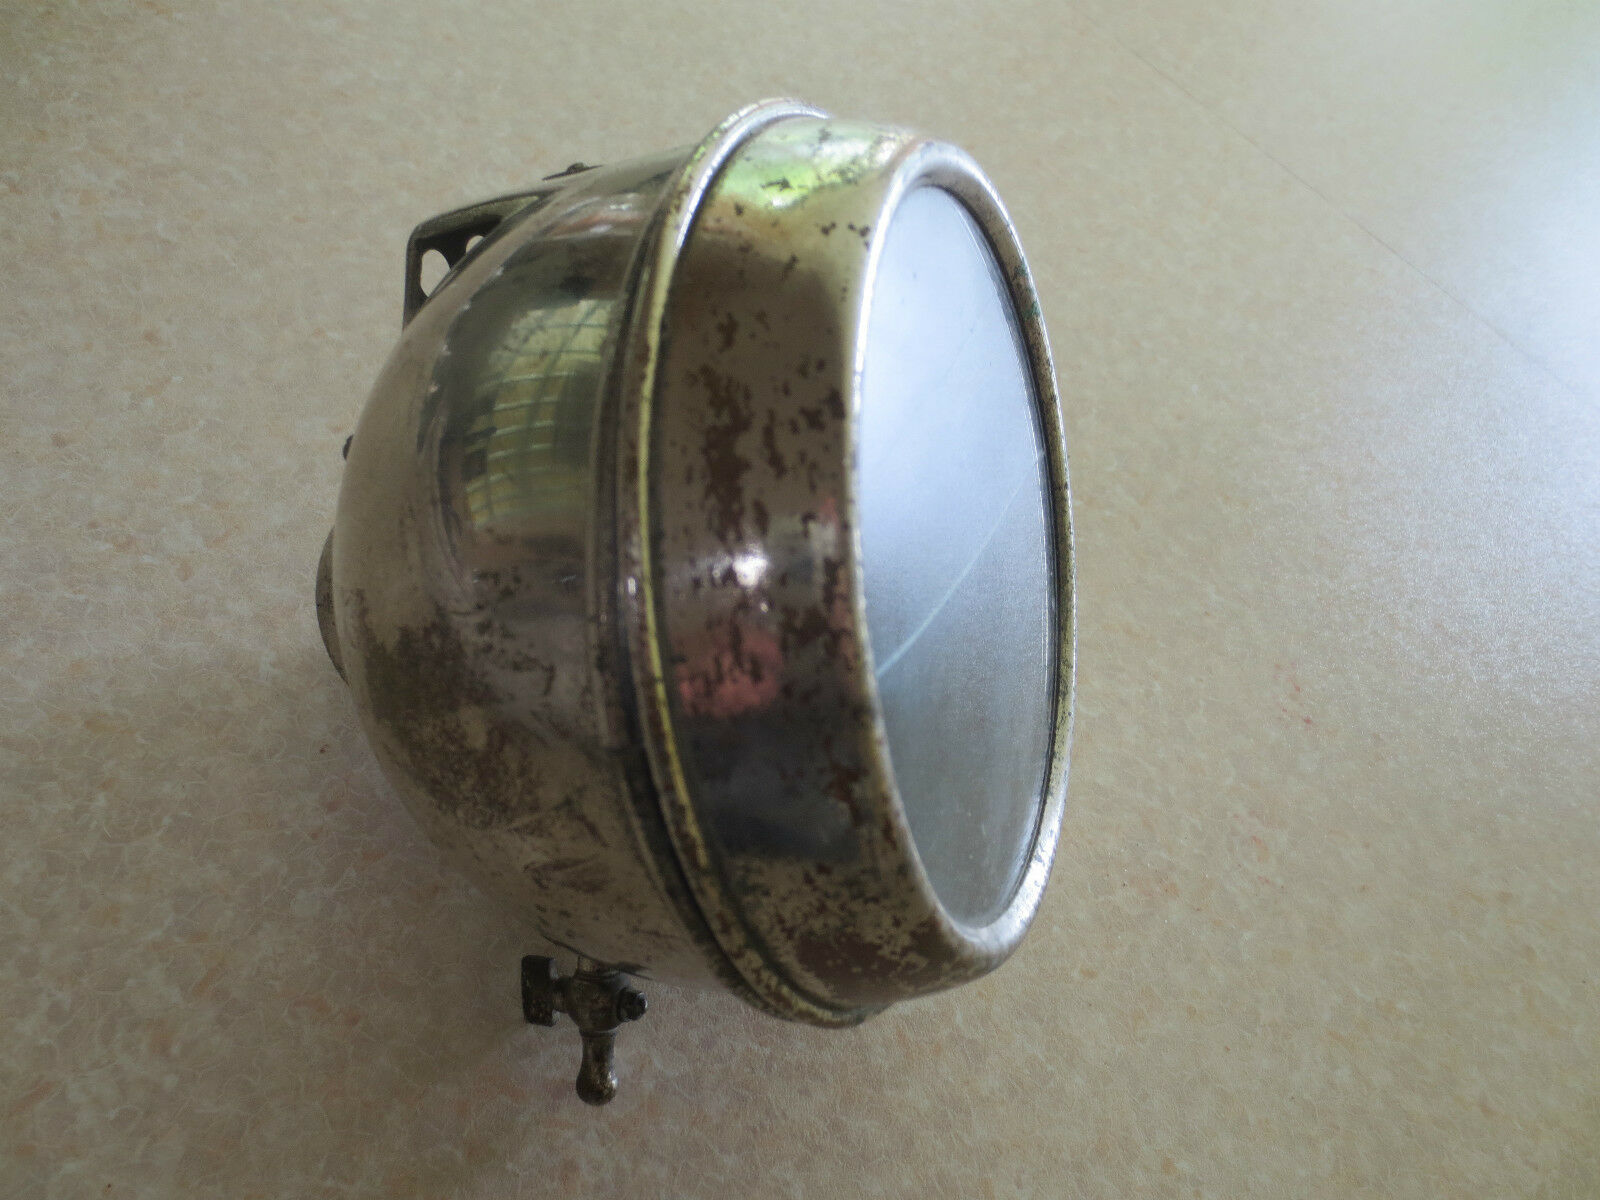 Vintage bicycle carbide lamp for Peugeot Raleigh Sunbeam Triumph BSA  Rudge  credit guarantee